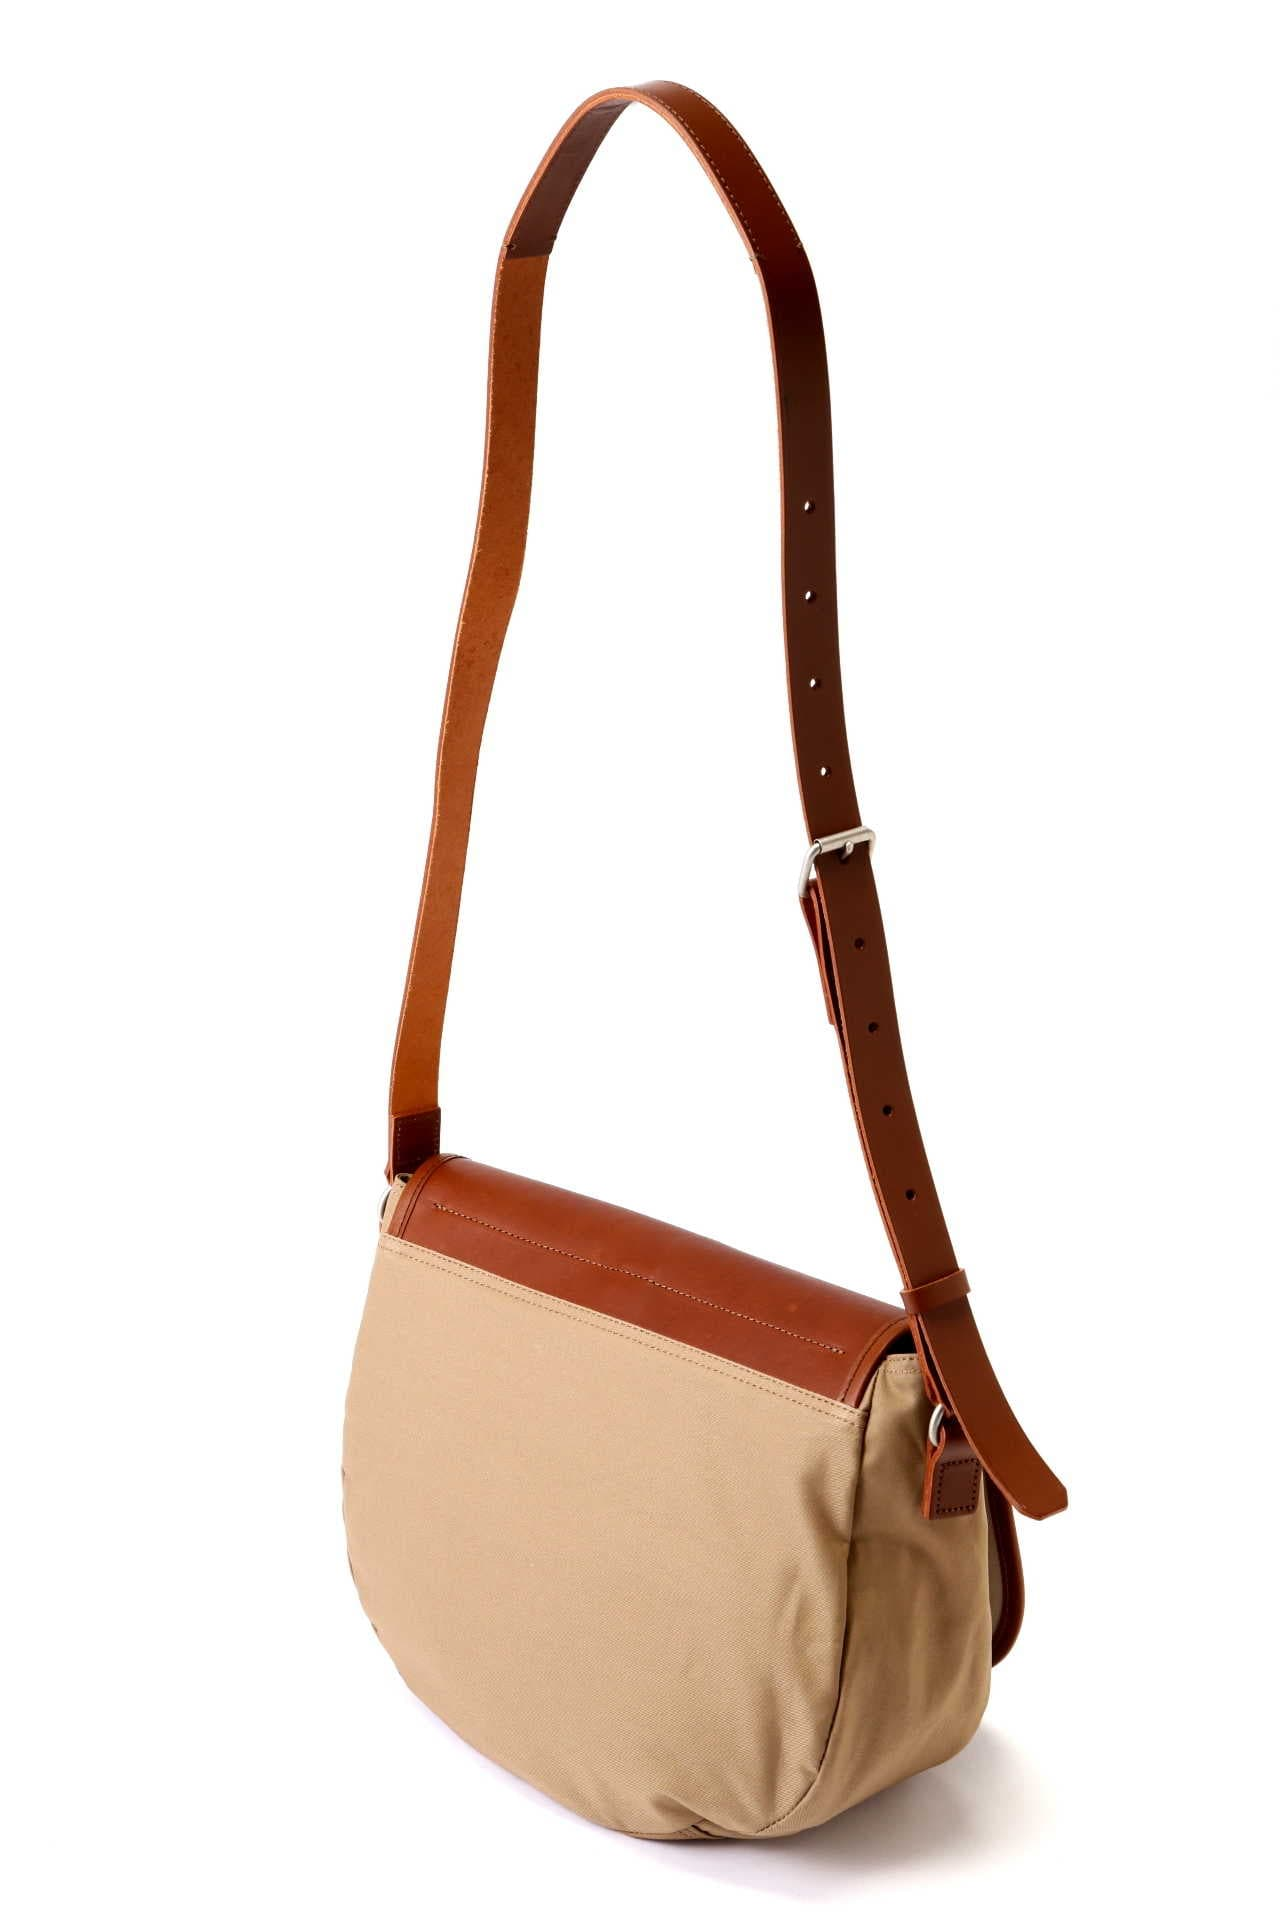 COTTON LEATHER SATCHEL2